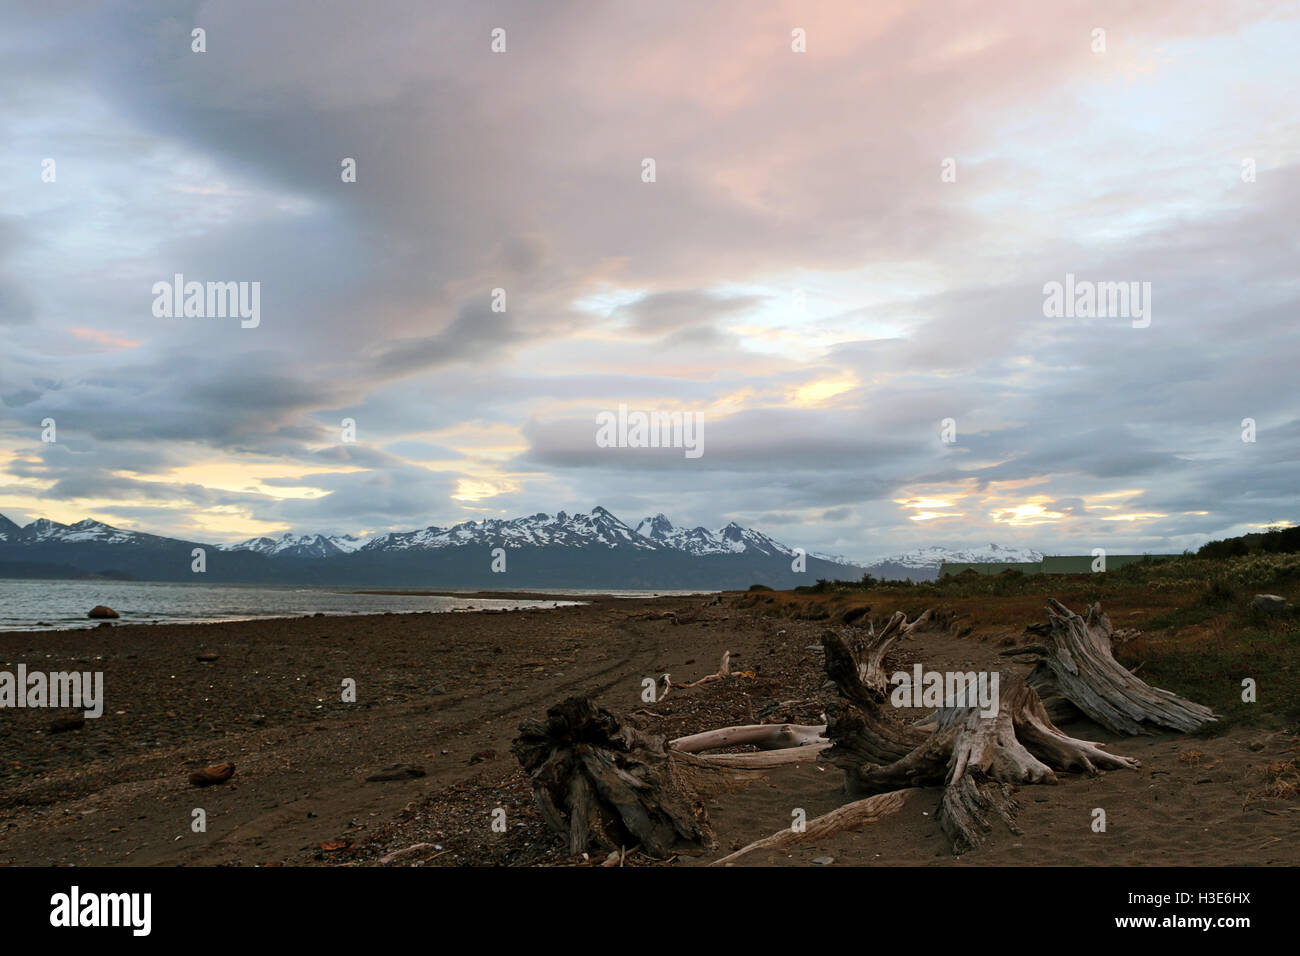 Beagle channel under a cloudy eventide, view from an Ushuaia site with trunks and bedrocks - Stock Image